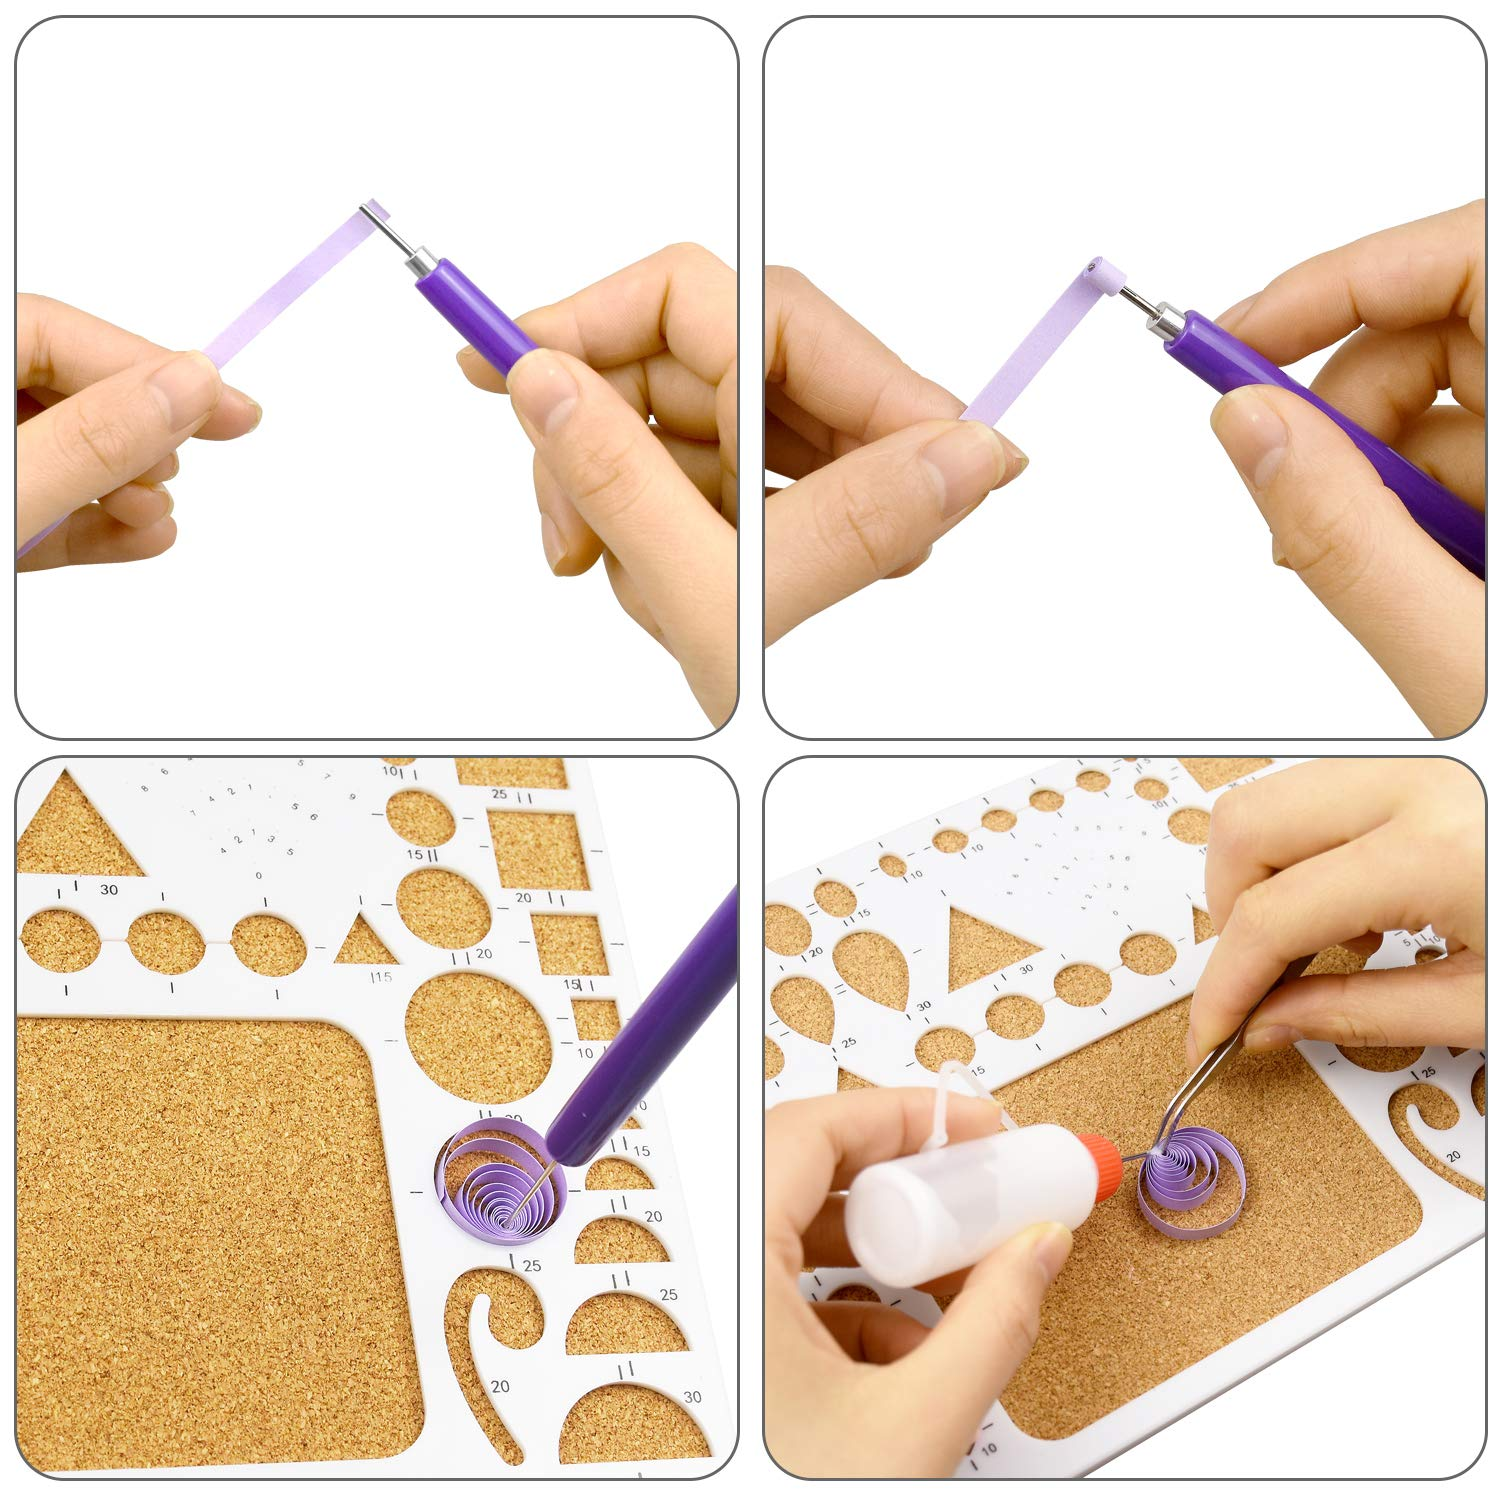 10 Pieces Multifunction Slotted Paper Quilling Tools Kits 2 Sets 5 in 1 Quilling Tools